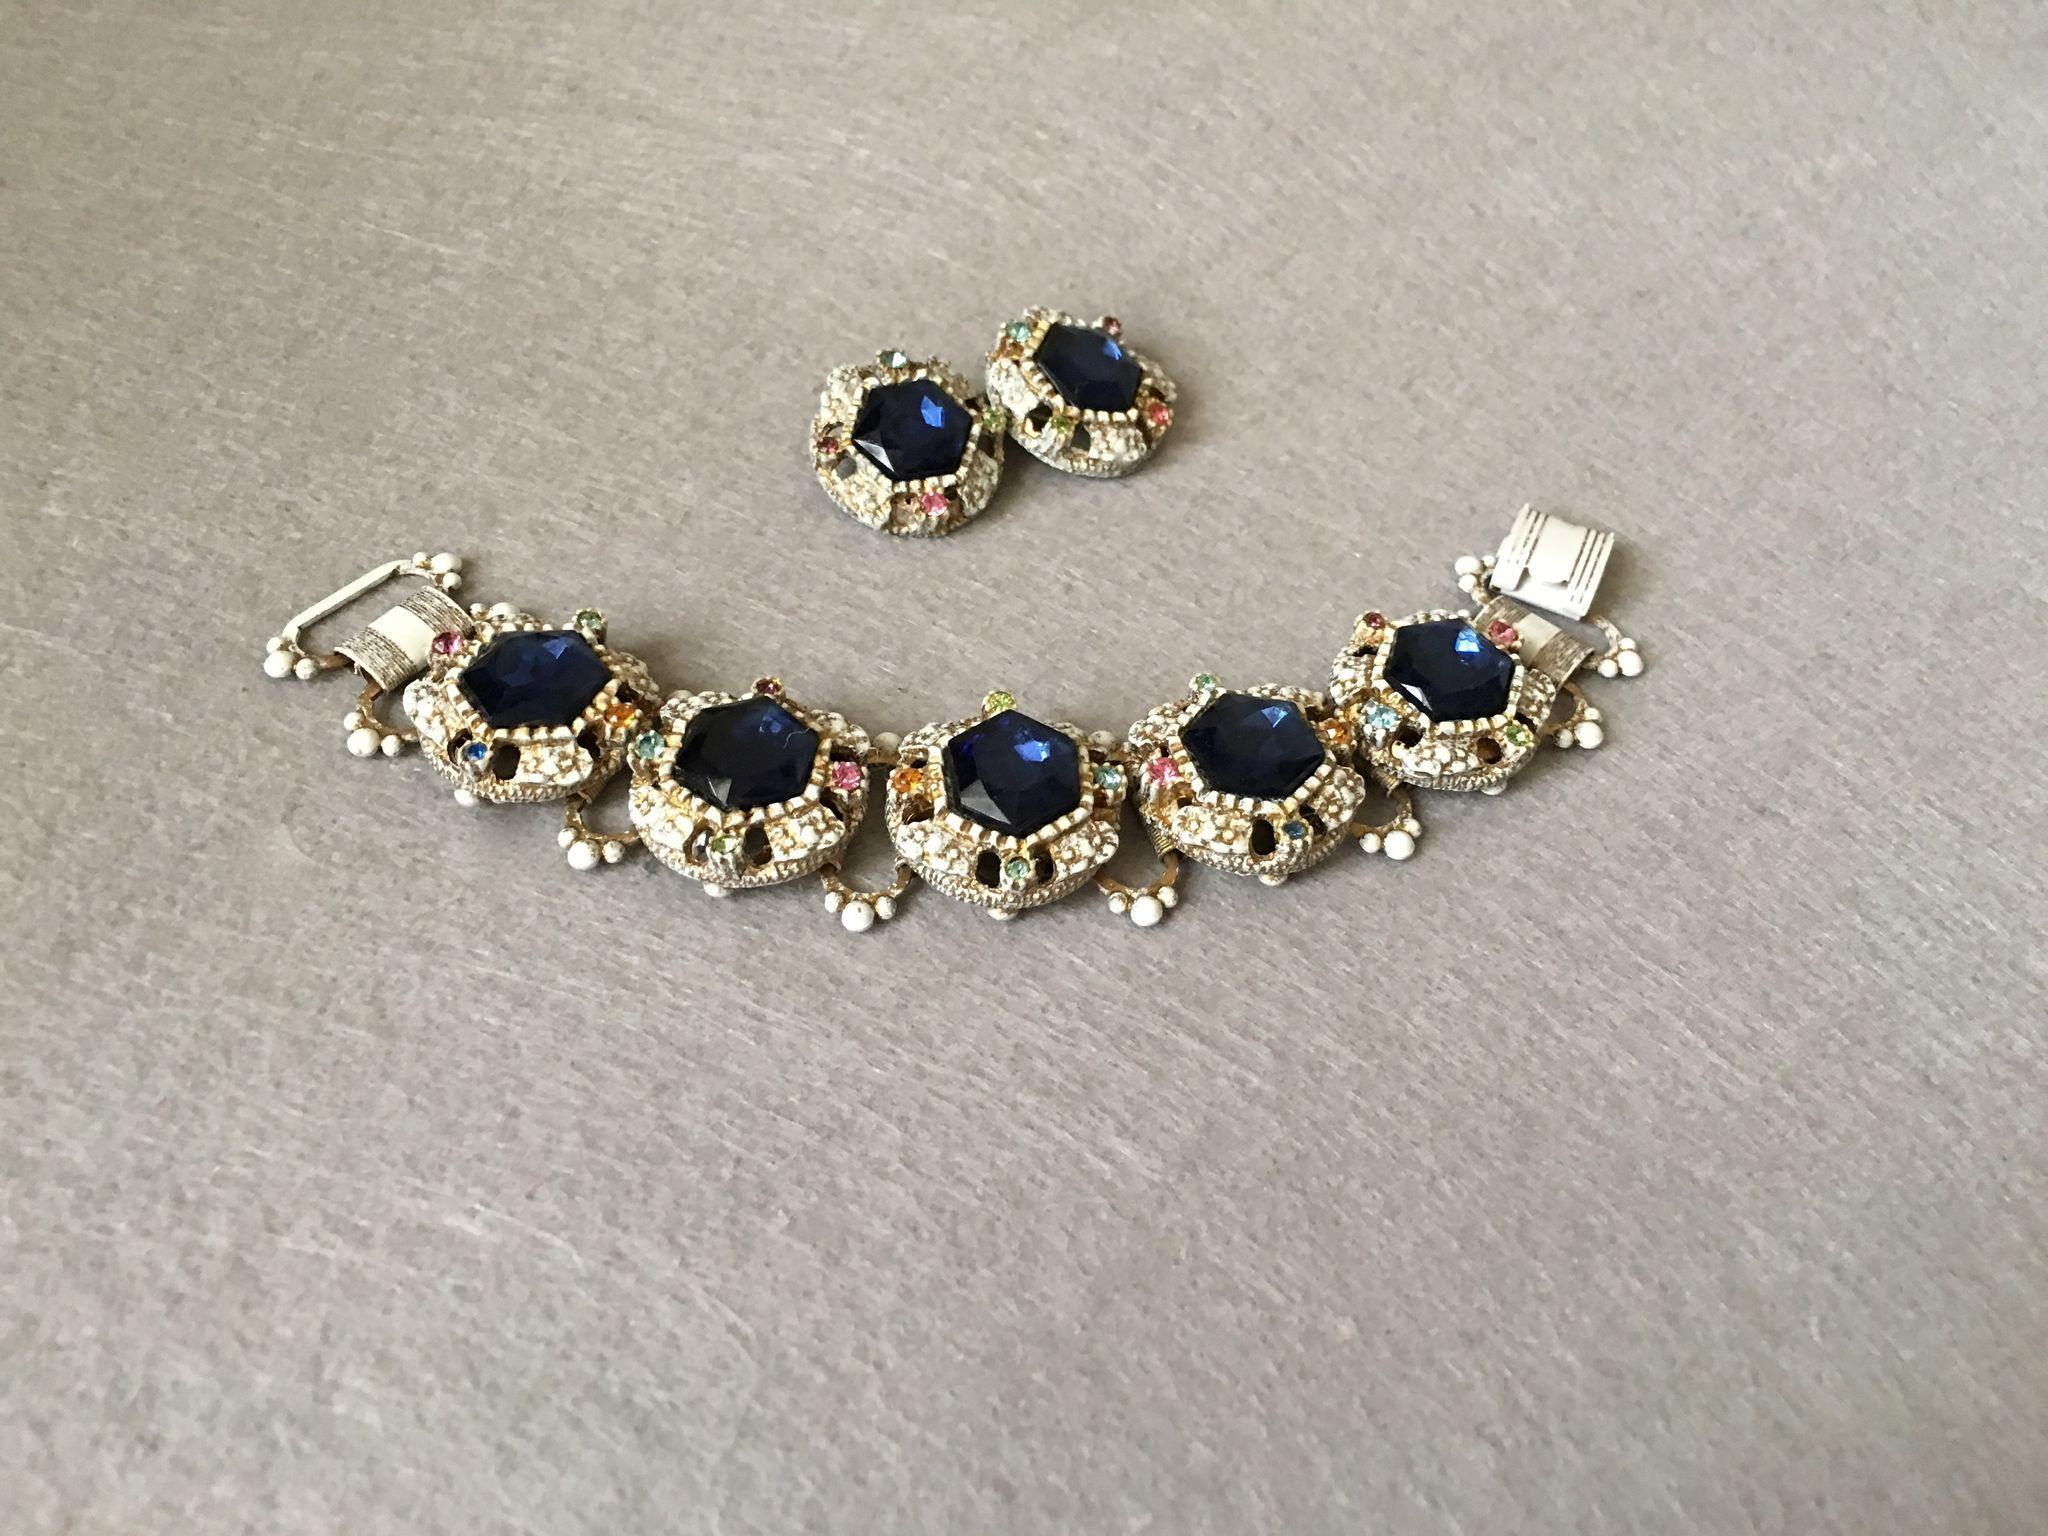 Early Bracelet and Earring Set